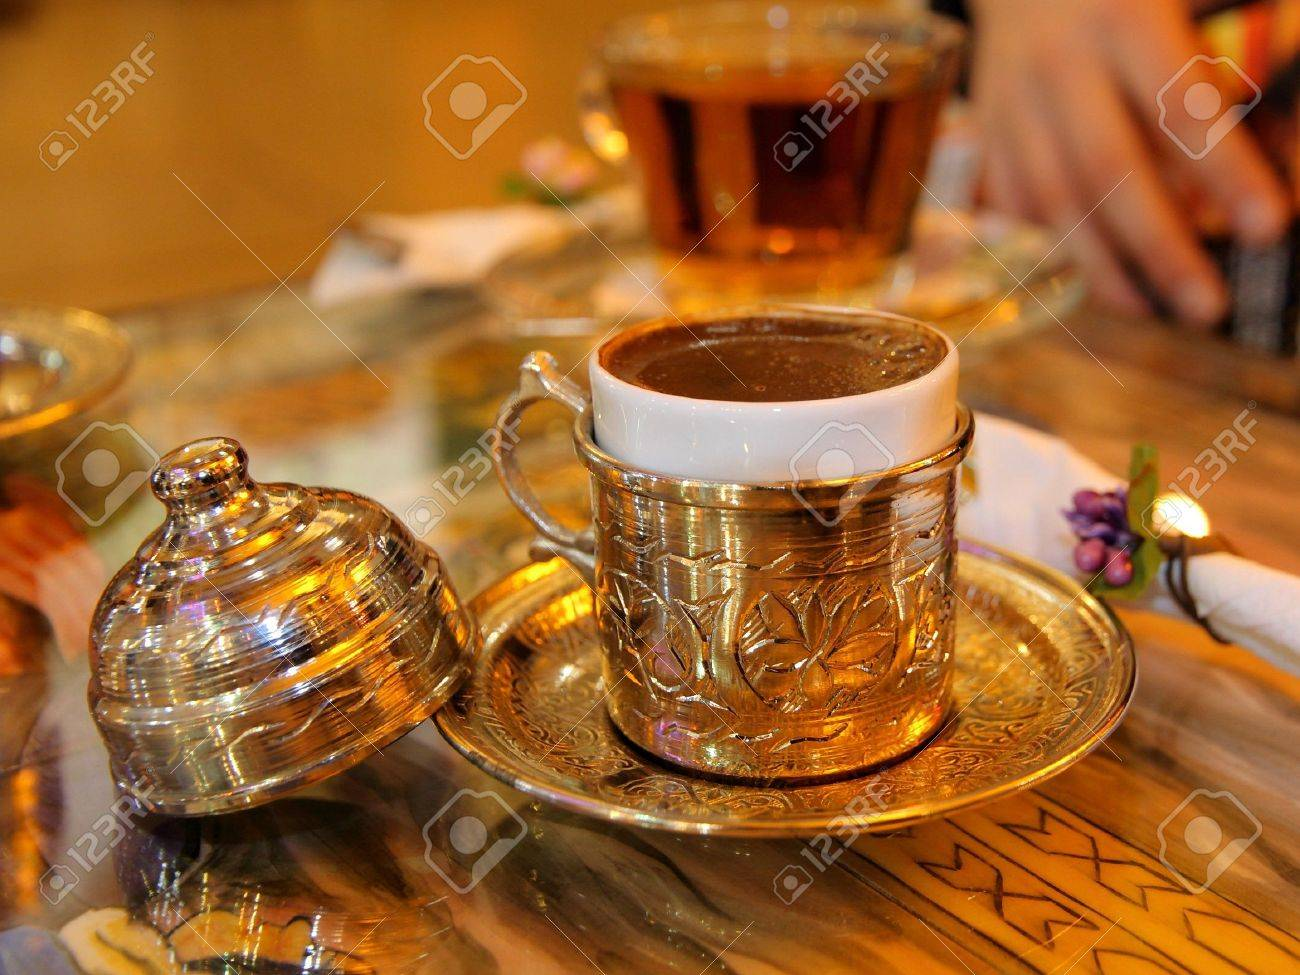 turkish coffee served in a traditional turkish metall dish cap Stock Photo - 7211509